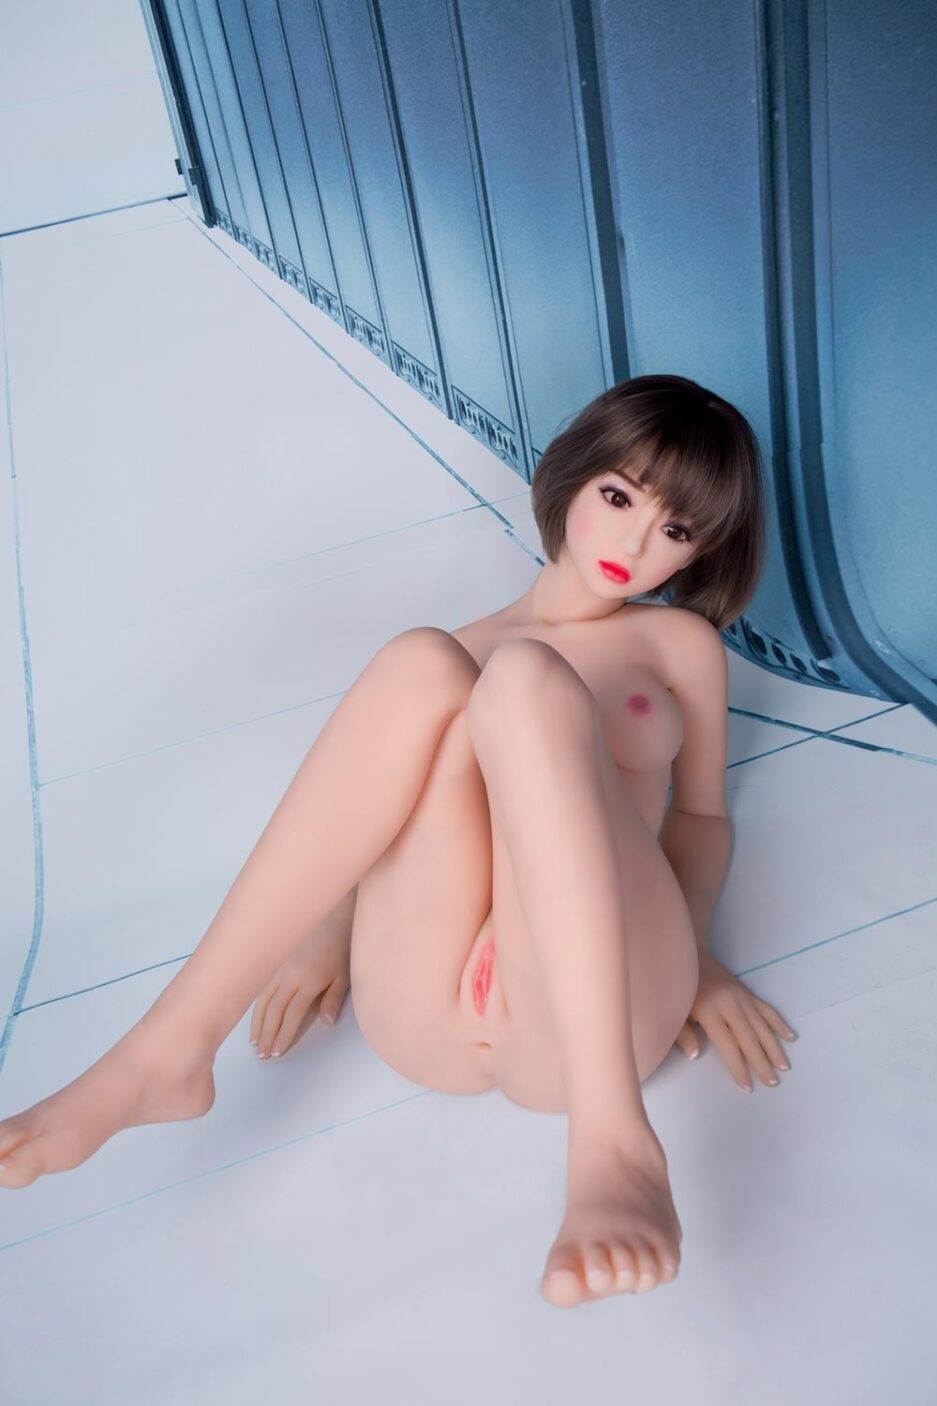 Sex doll lying on the ground